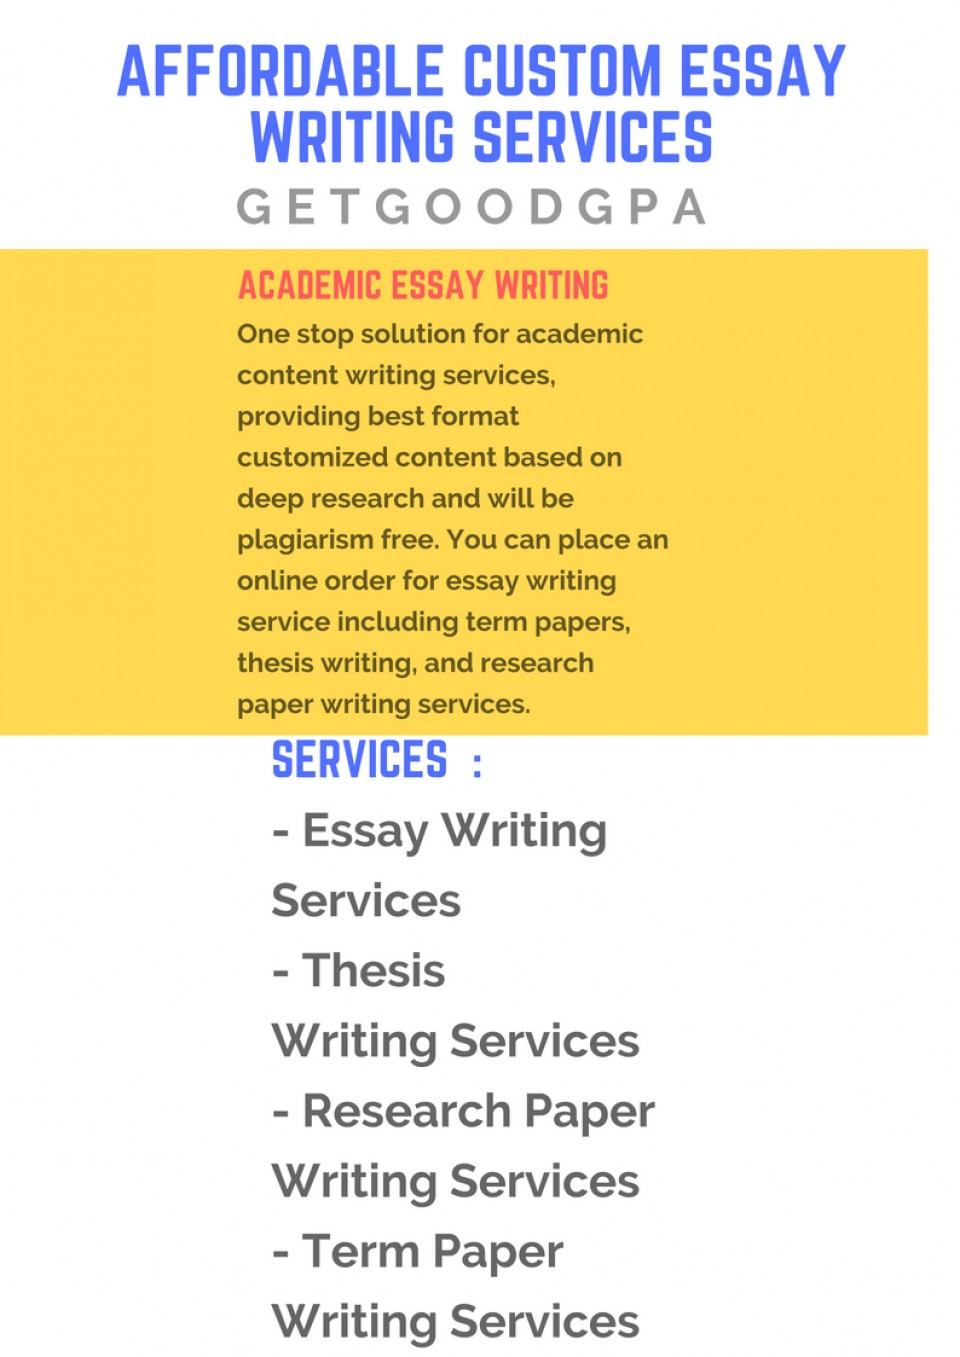 002 Research Paper Writing Services Archaicawful In Pakistan Mumbai Academic India 960